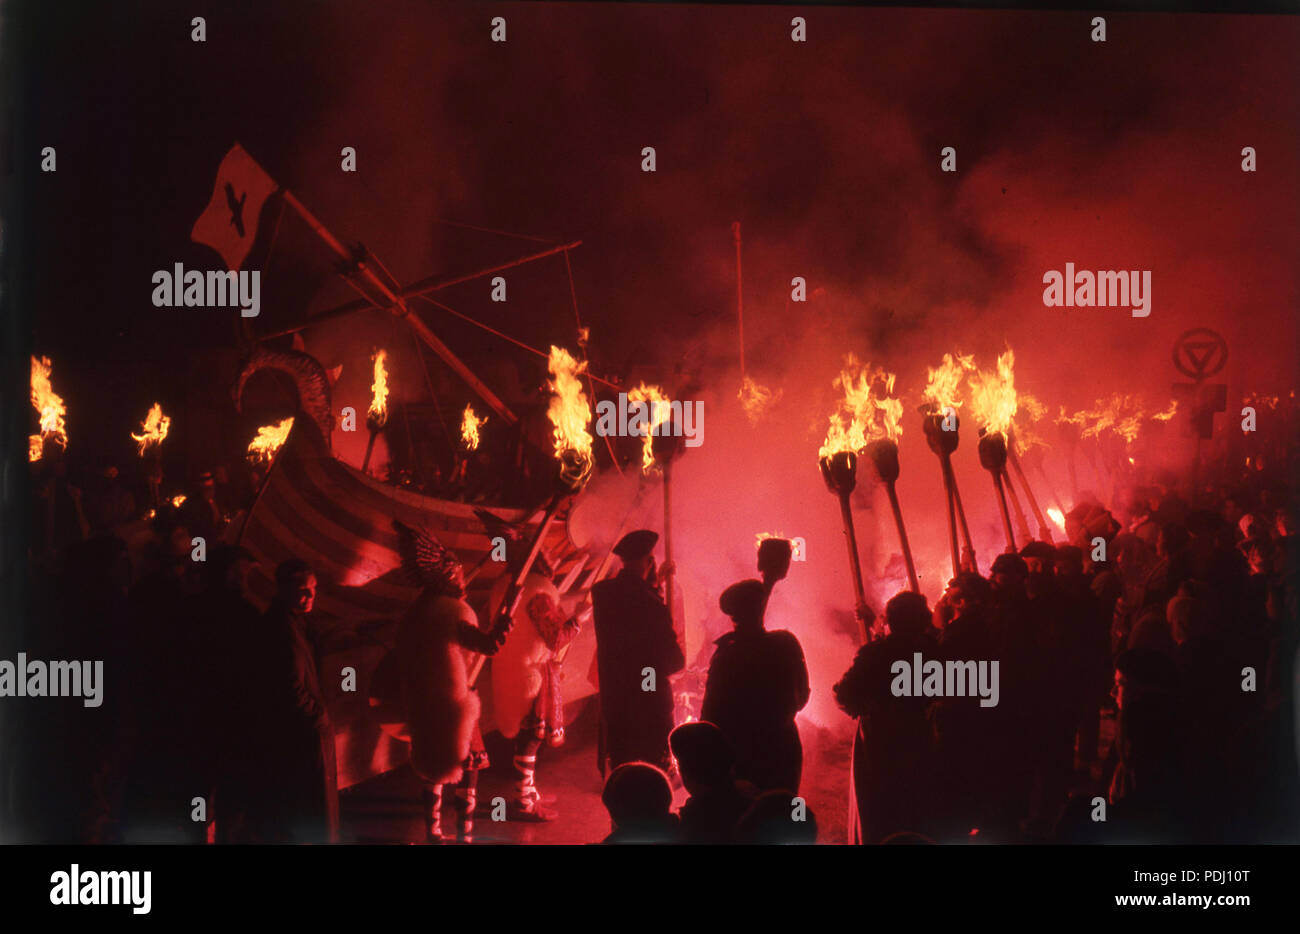 1960s, night-time and a crowd watch a re-enactment of a viking raid from a longship, with burning torches and fire, Scotland. The vikings were Norse seafarers, a fierce tribe of peoples who raided the UK from their Northern homelands and are an important part of British history. - Stock Image